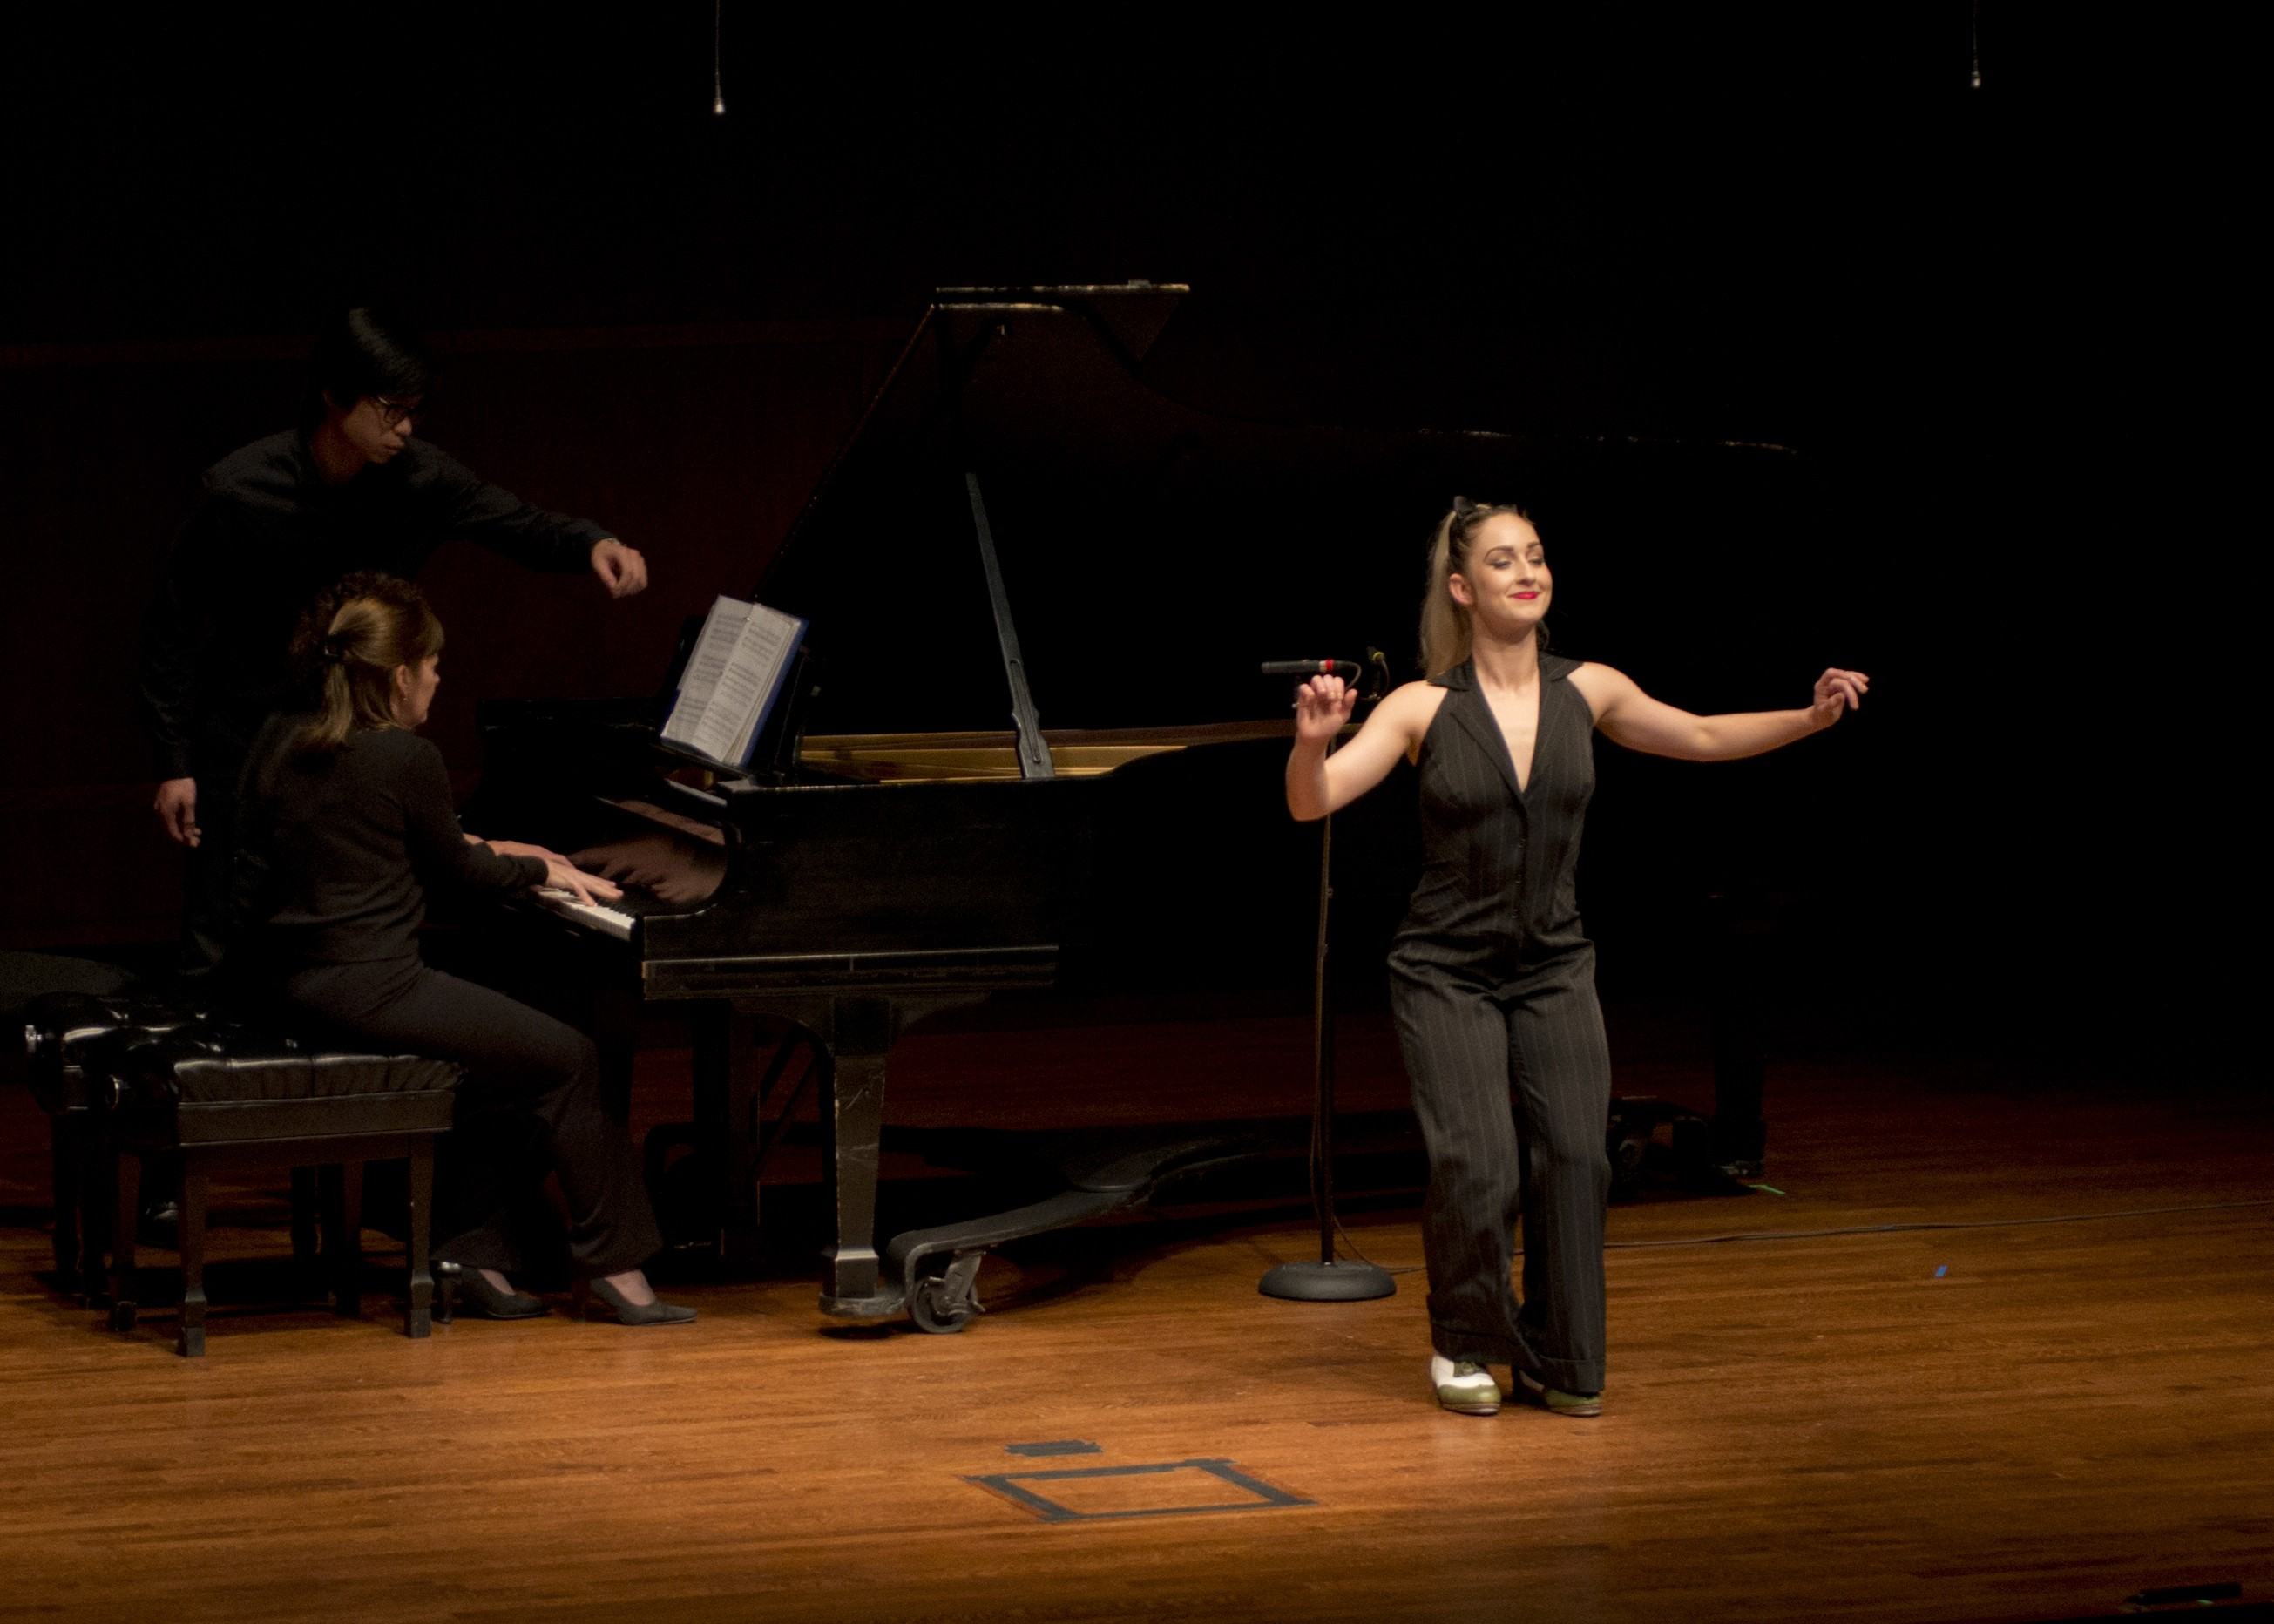 Mina Miller, Piano; Kimberly Russ, piano; Shadou Mintrone, tap dancer